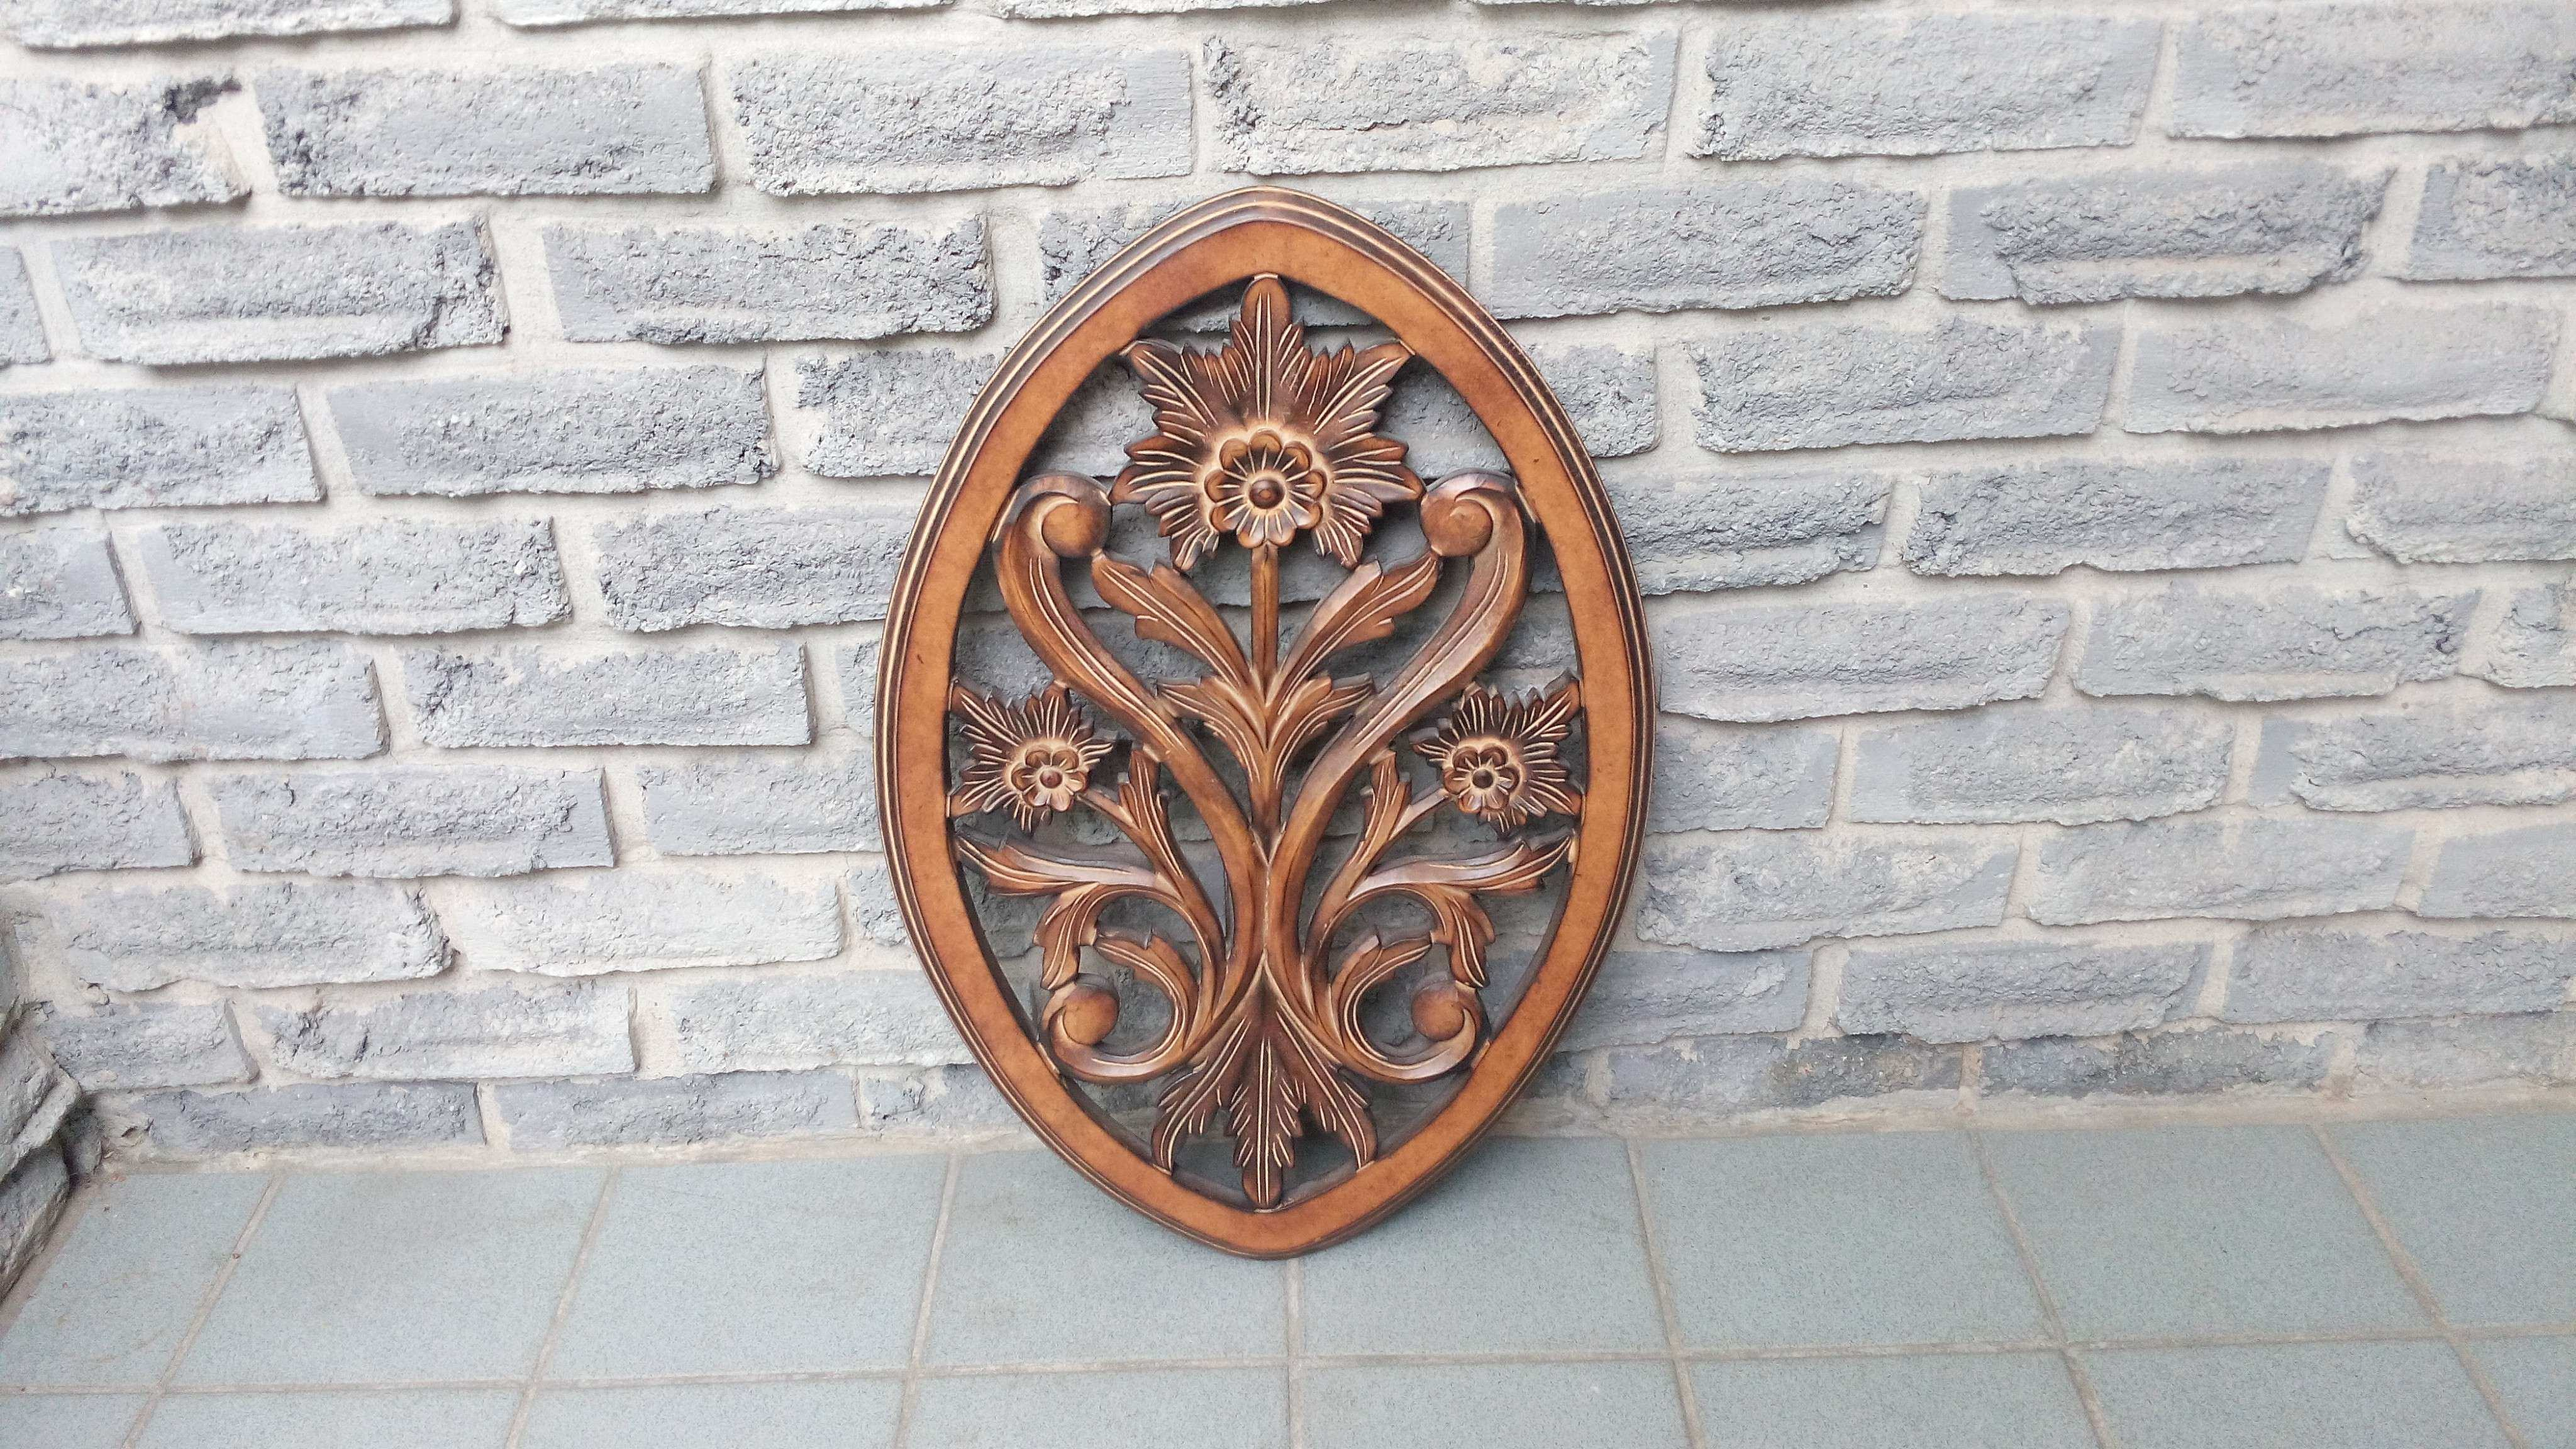 WOOD CARVED WALL HANGING DECOR Secondhand Pursuit